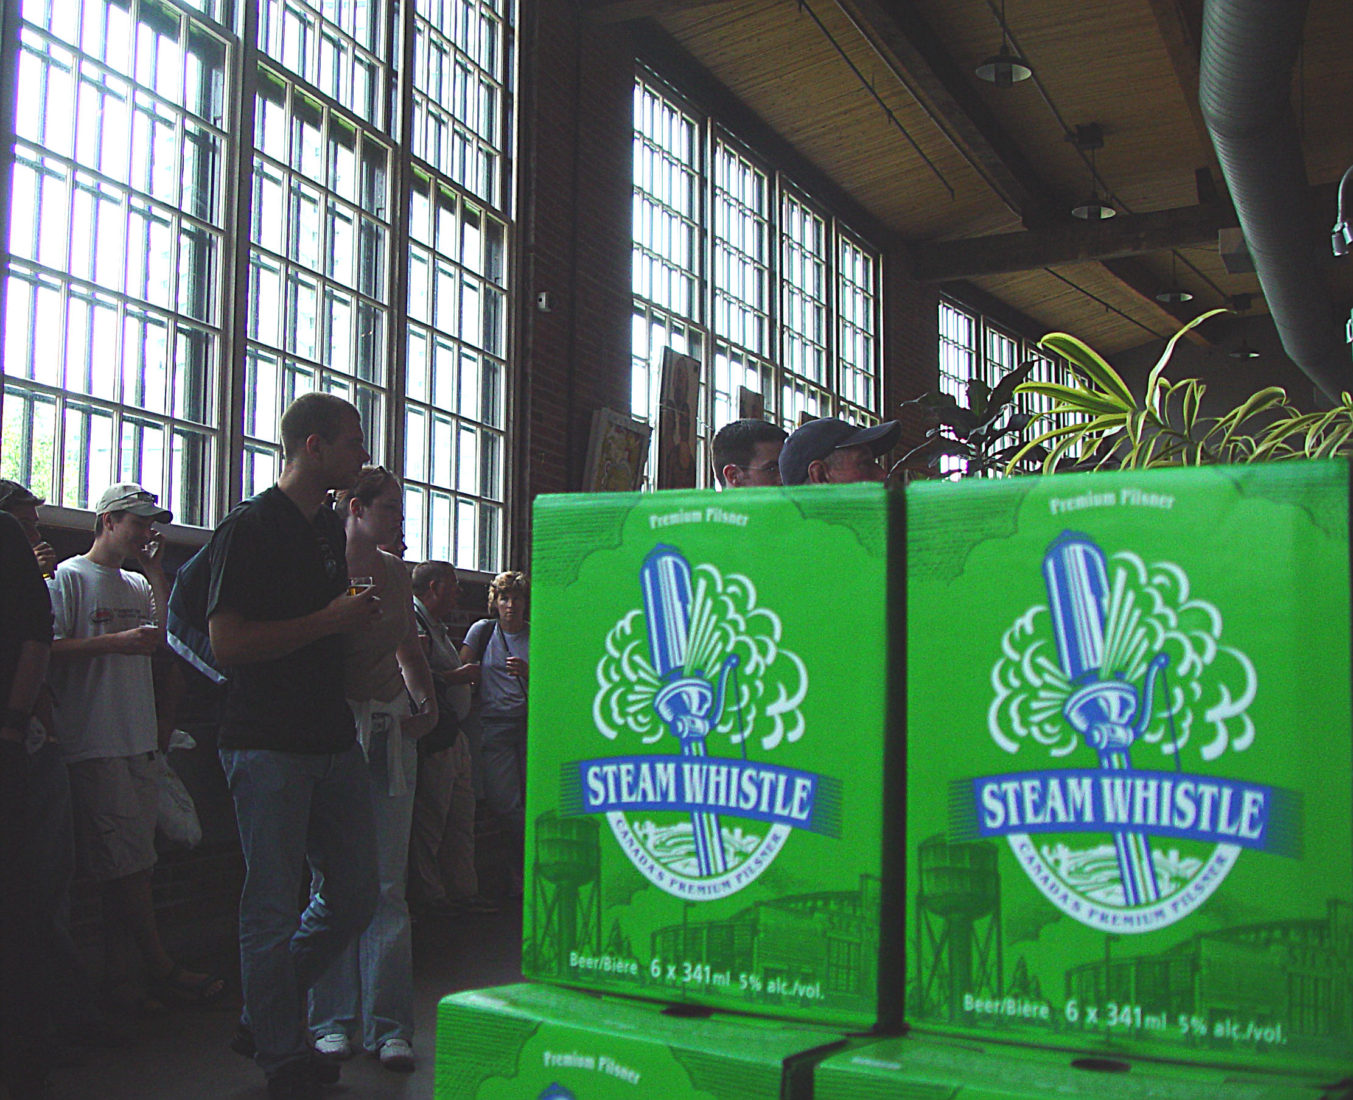 59. Steam Works Brewing, Toronto, Canada 2005